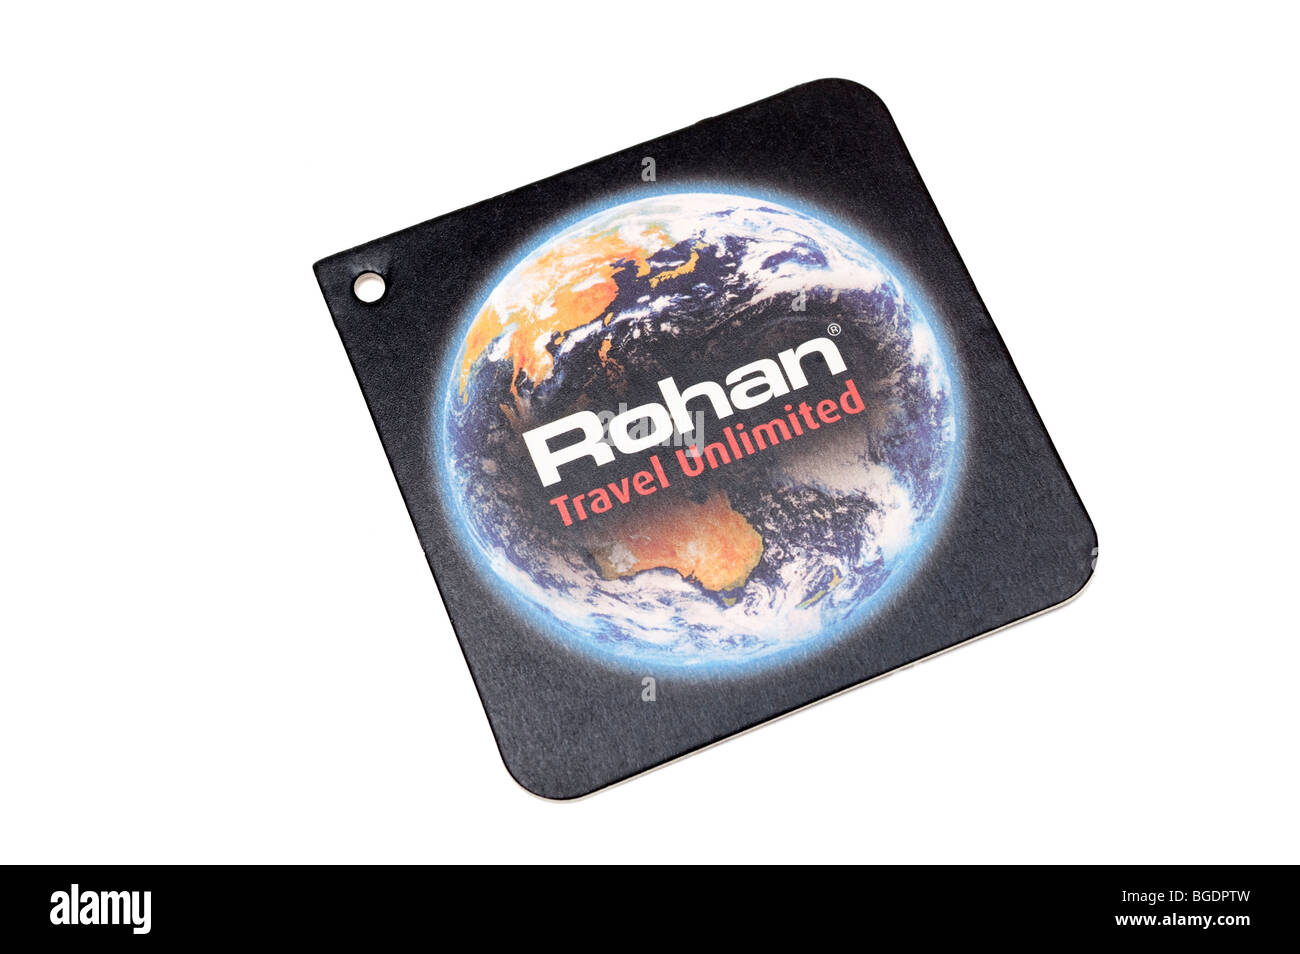 Rohan clothing label - Stock Image